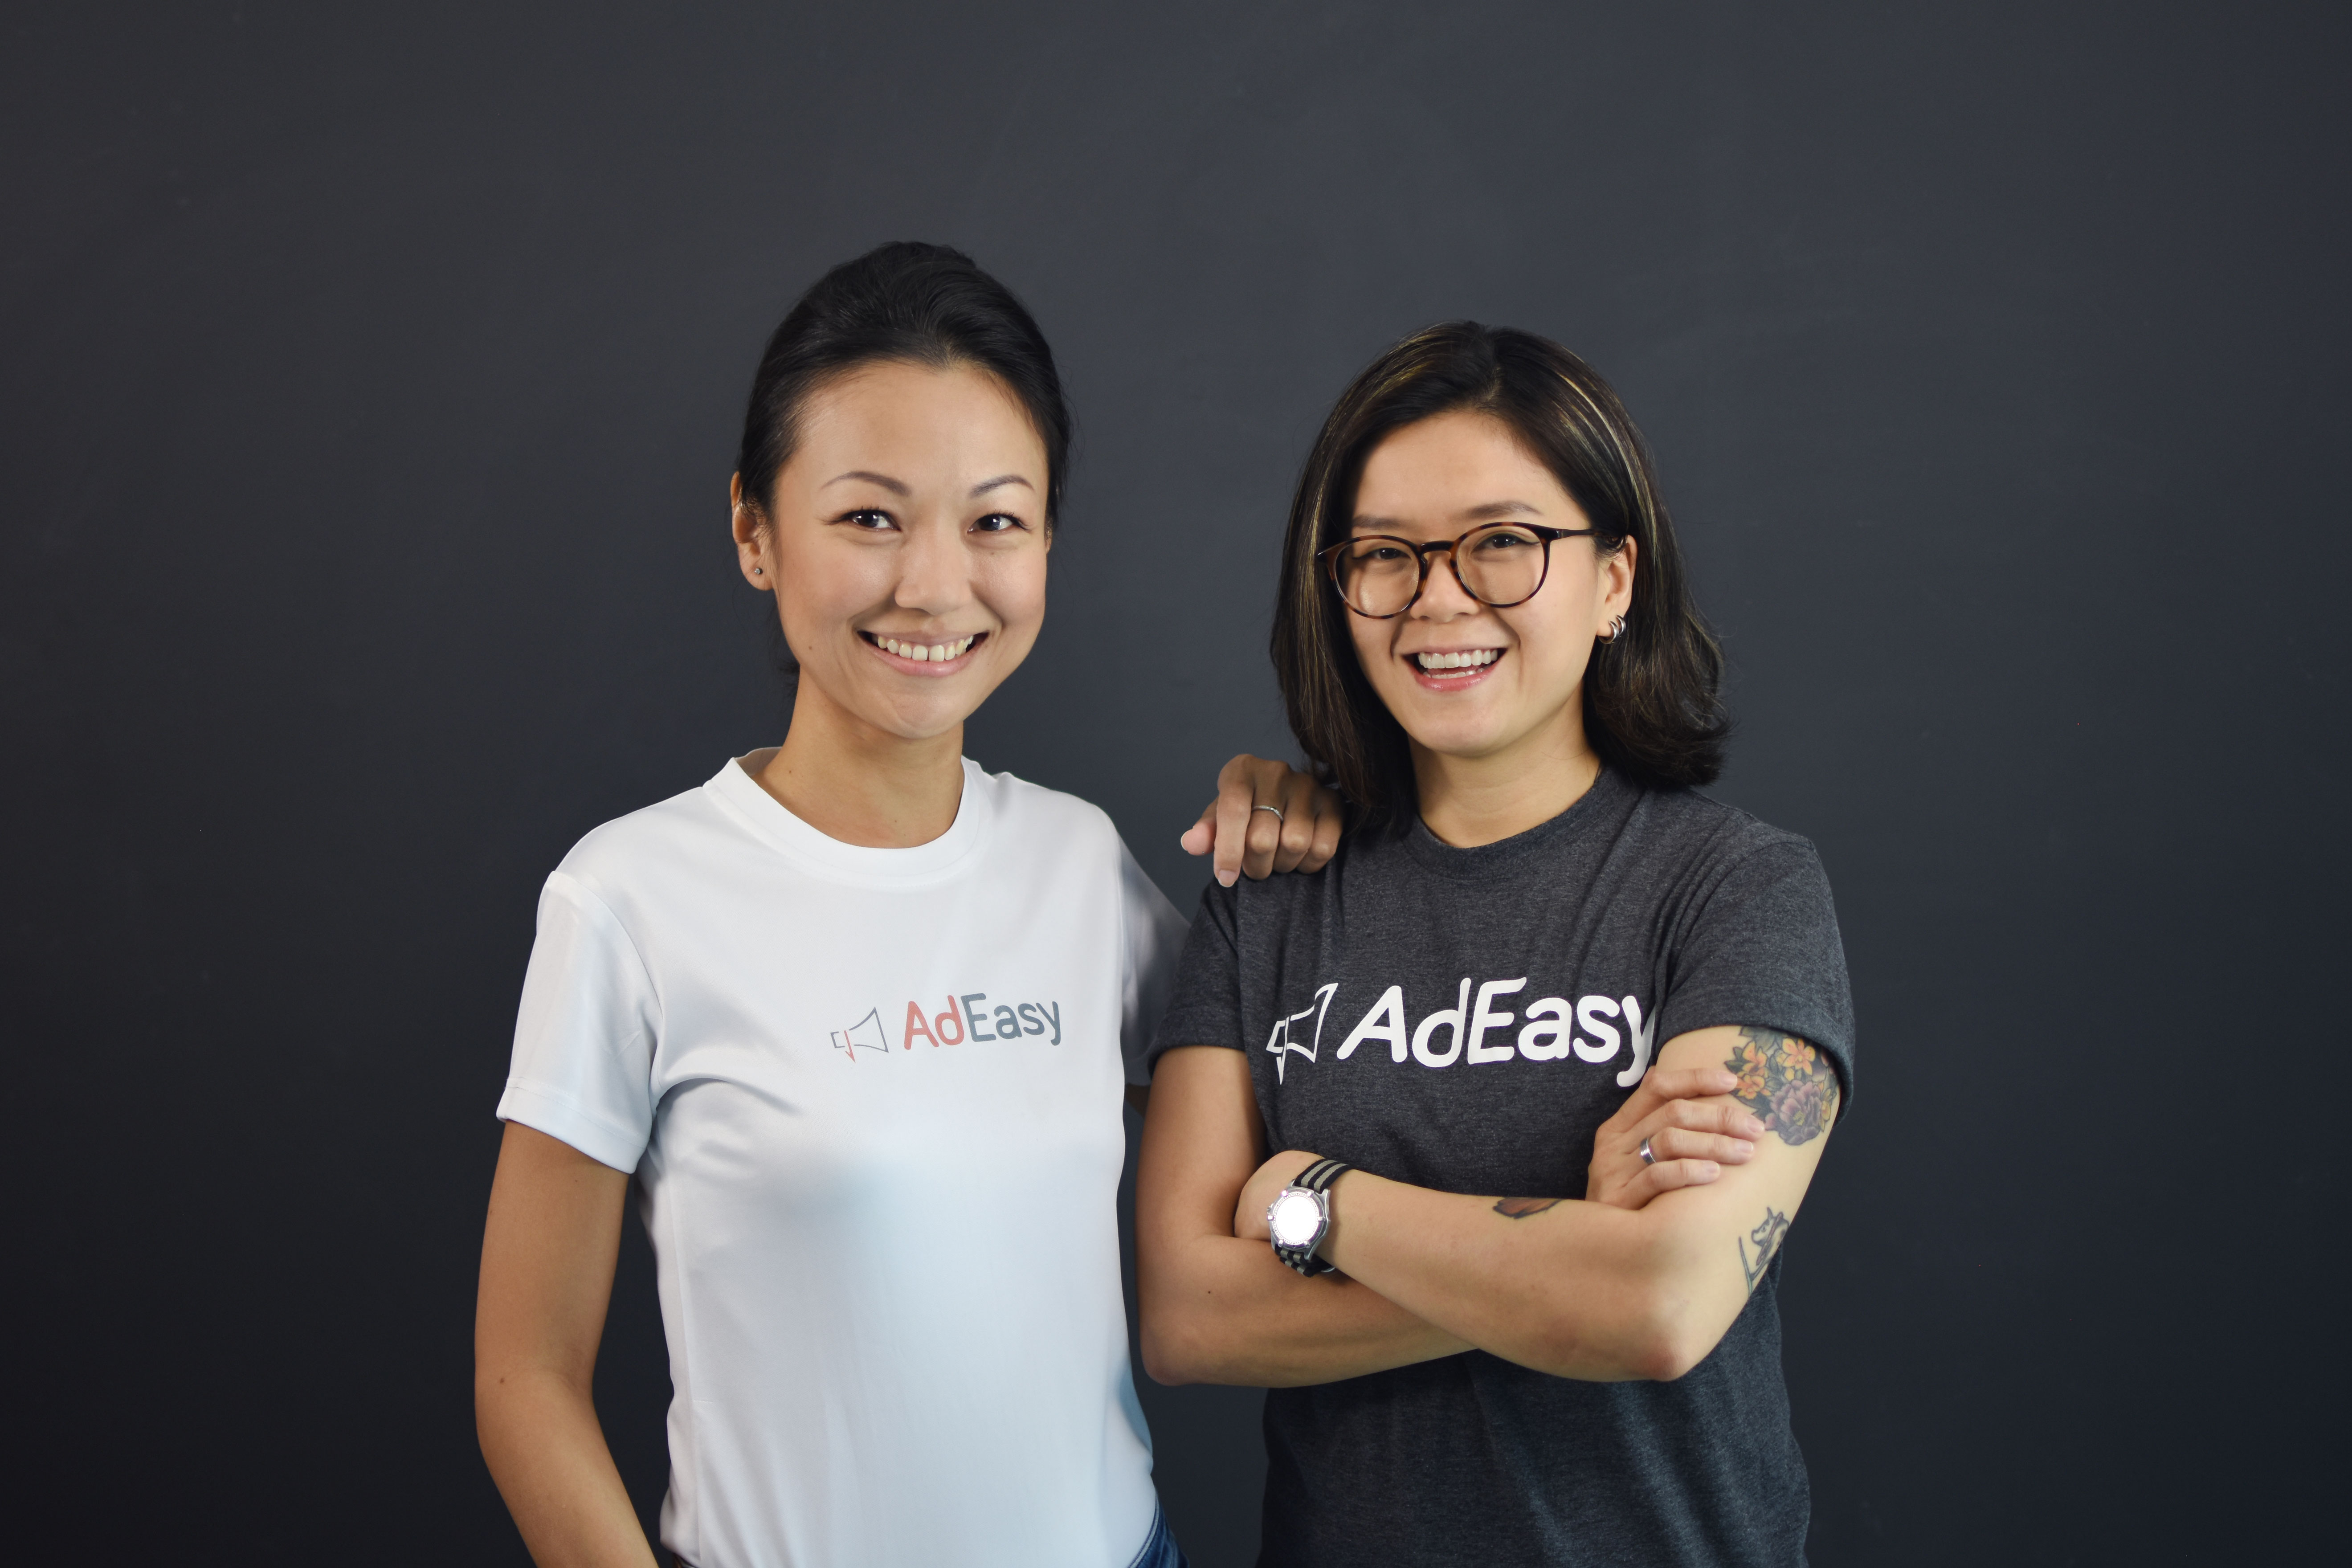 CEO & COO of AdEasy